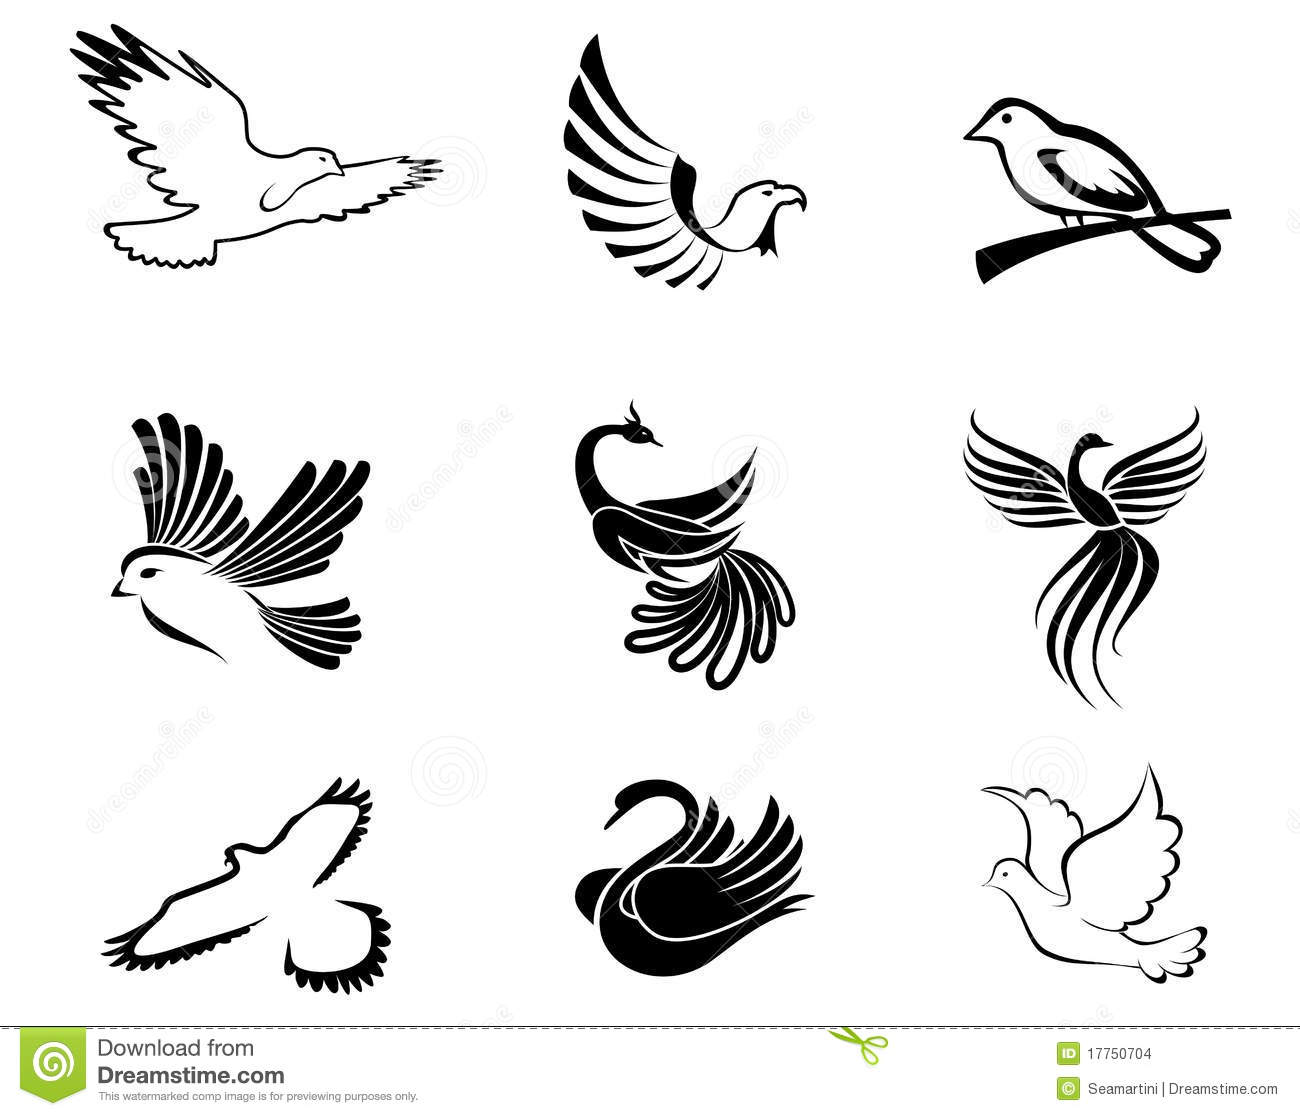 Dove Black And White Clip Art Images Download likewise Confirmation Symbols together with The Peace Dove together with Sacraments Holy Orders besides Royalty Free Stock Photos Petroglyph Symbol Vector Silhouettes Image35496538. on holy spirit graphics